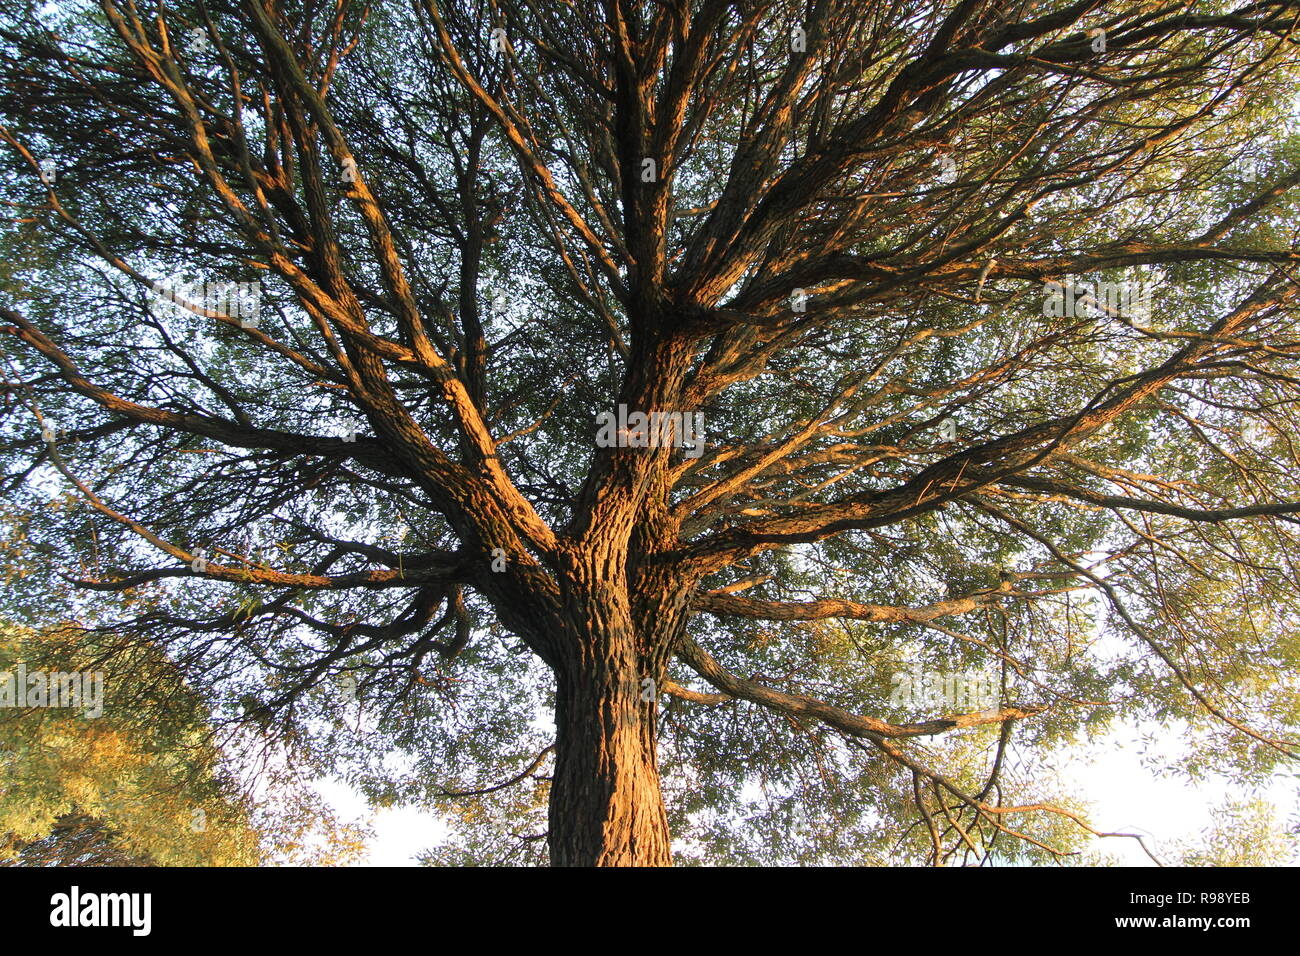 A big tree with big crown shot from below in beautiful sunset rays and clear blue sky at the background - Stock Image